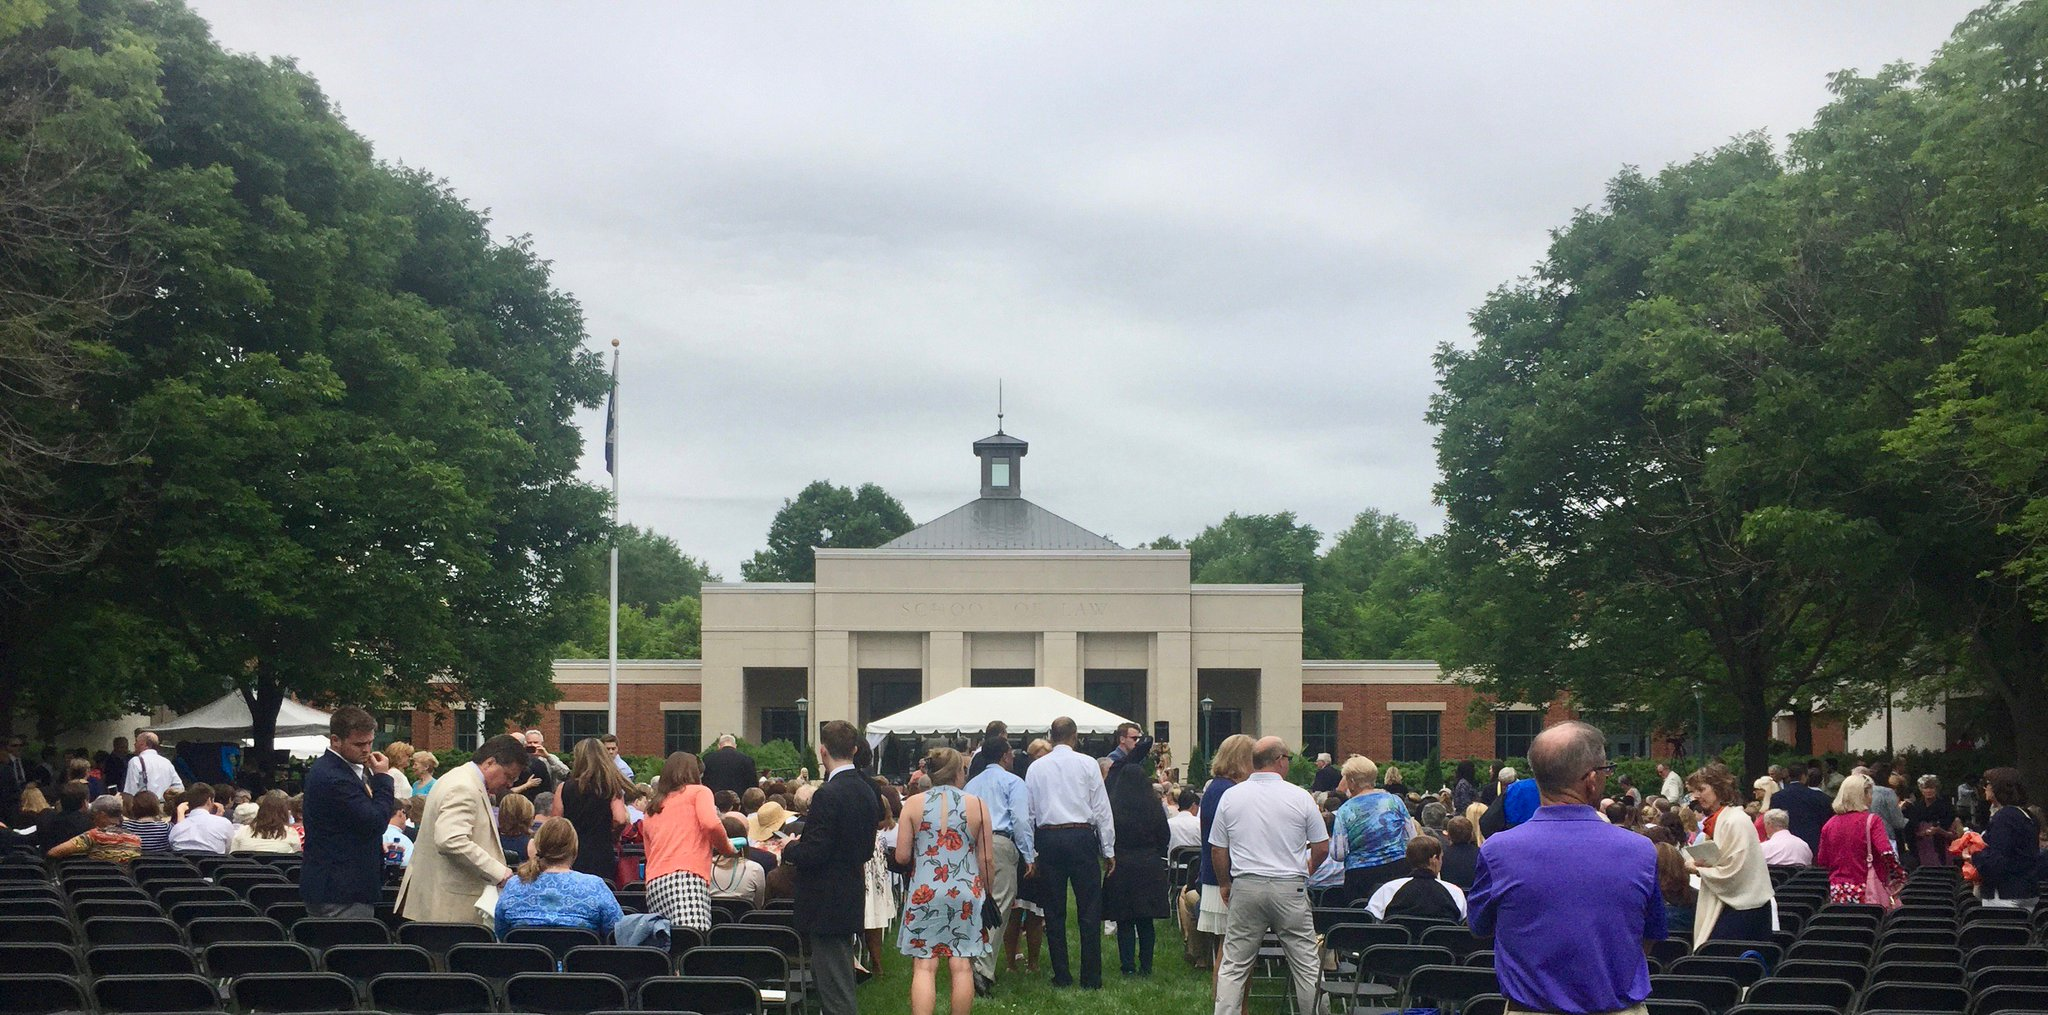 A beautiful day to celebrate the accomplishments of the class of 2017 @UVALaw. https://t.co/b86FdoSBrq